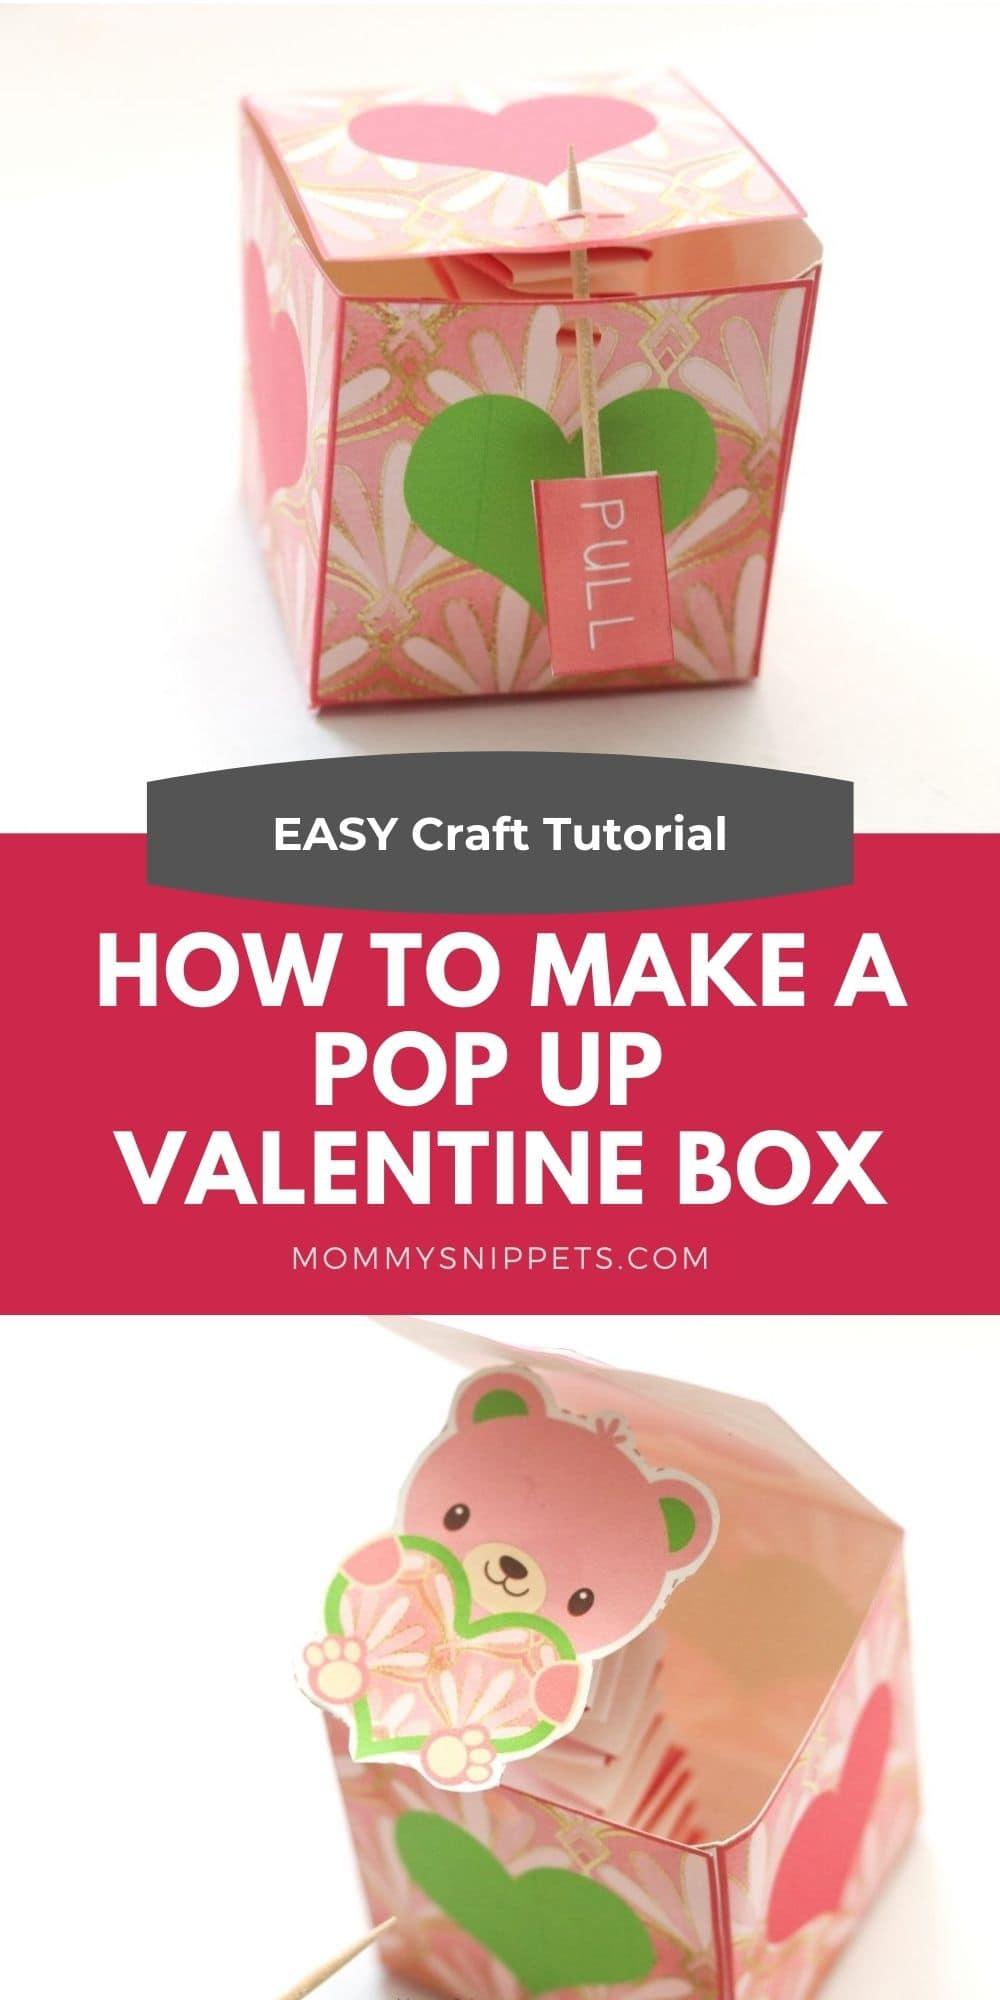 Easy Pop-Up Valentine's Day Craft Tutorial-MommySnippets.com